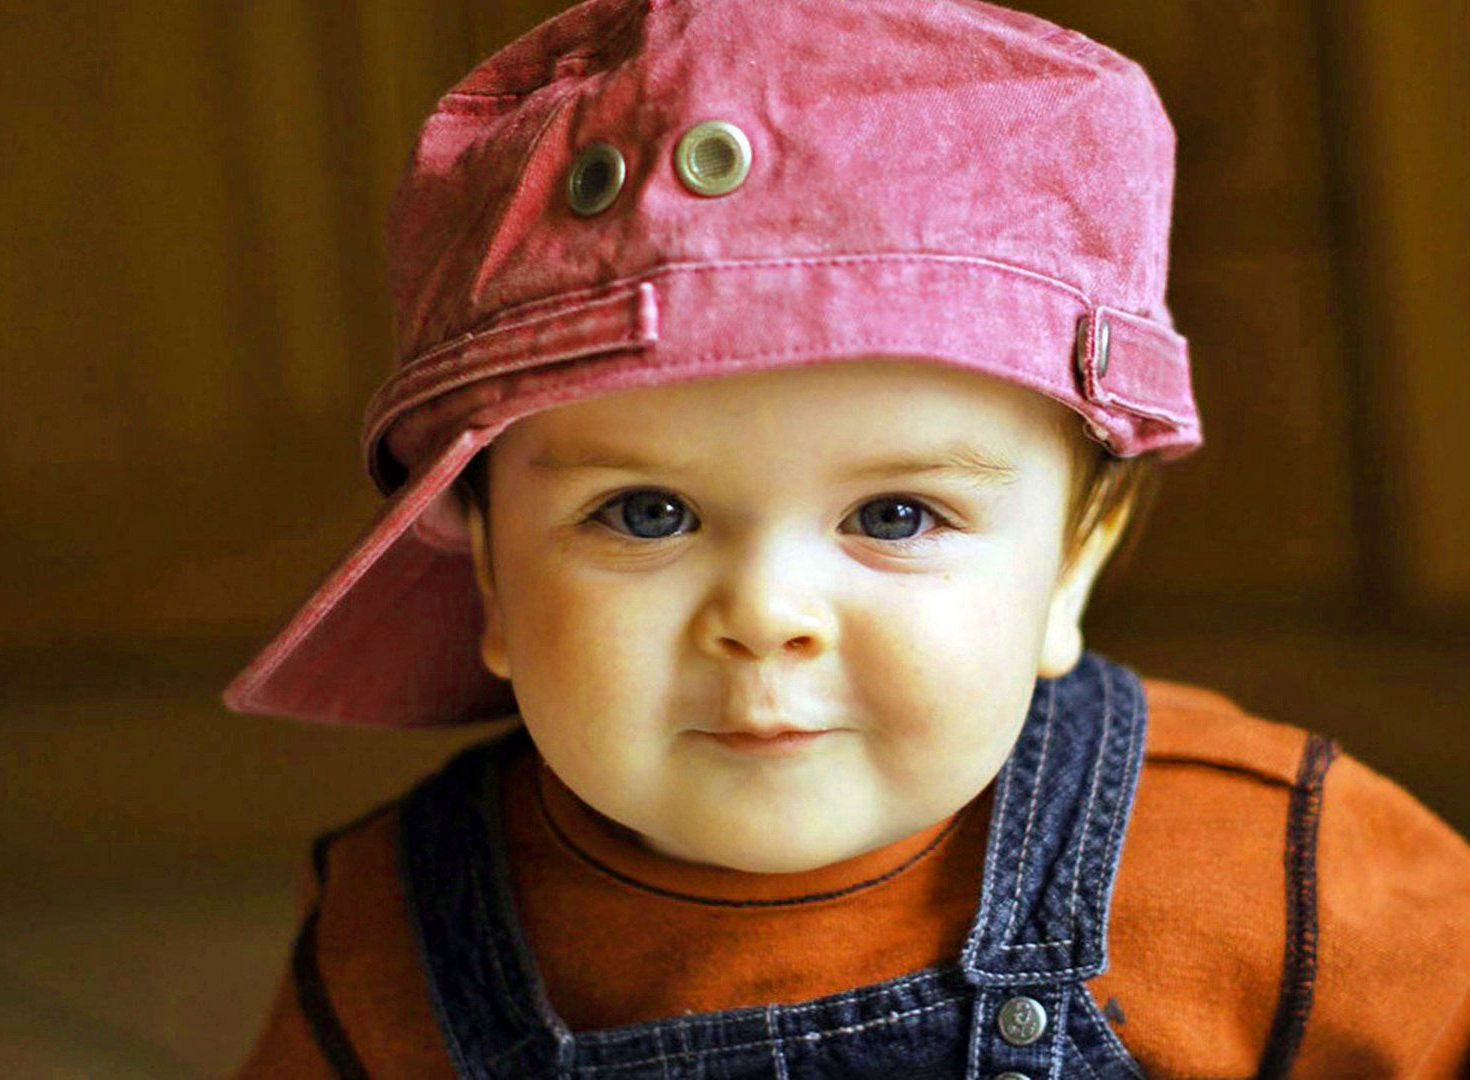 Baby Boy Hd Wallpapers Top Free Baby Boy Hd Backgrounds Wallpaperaccess